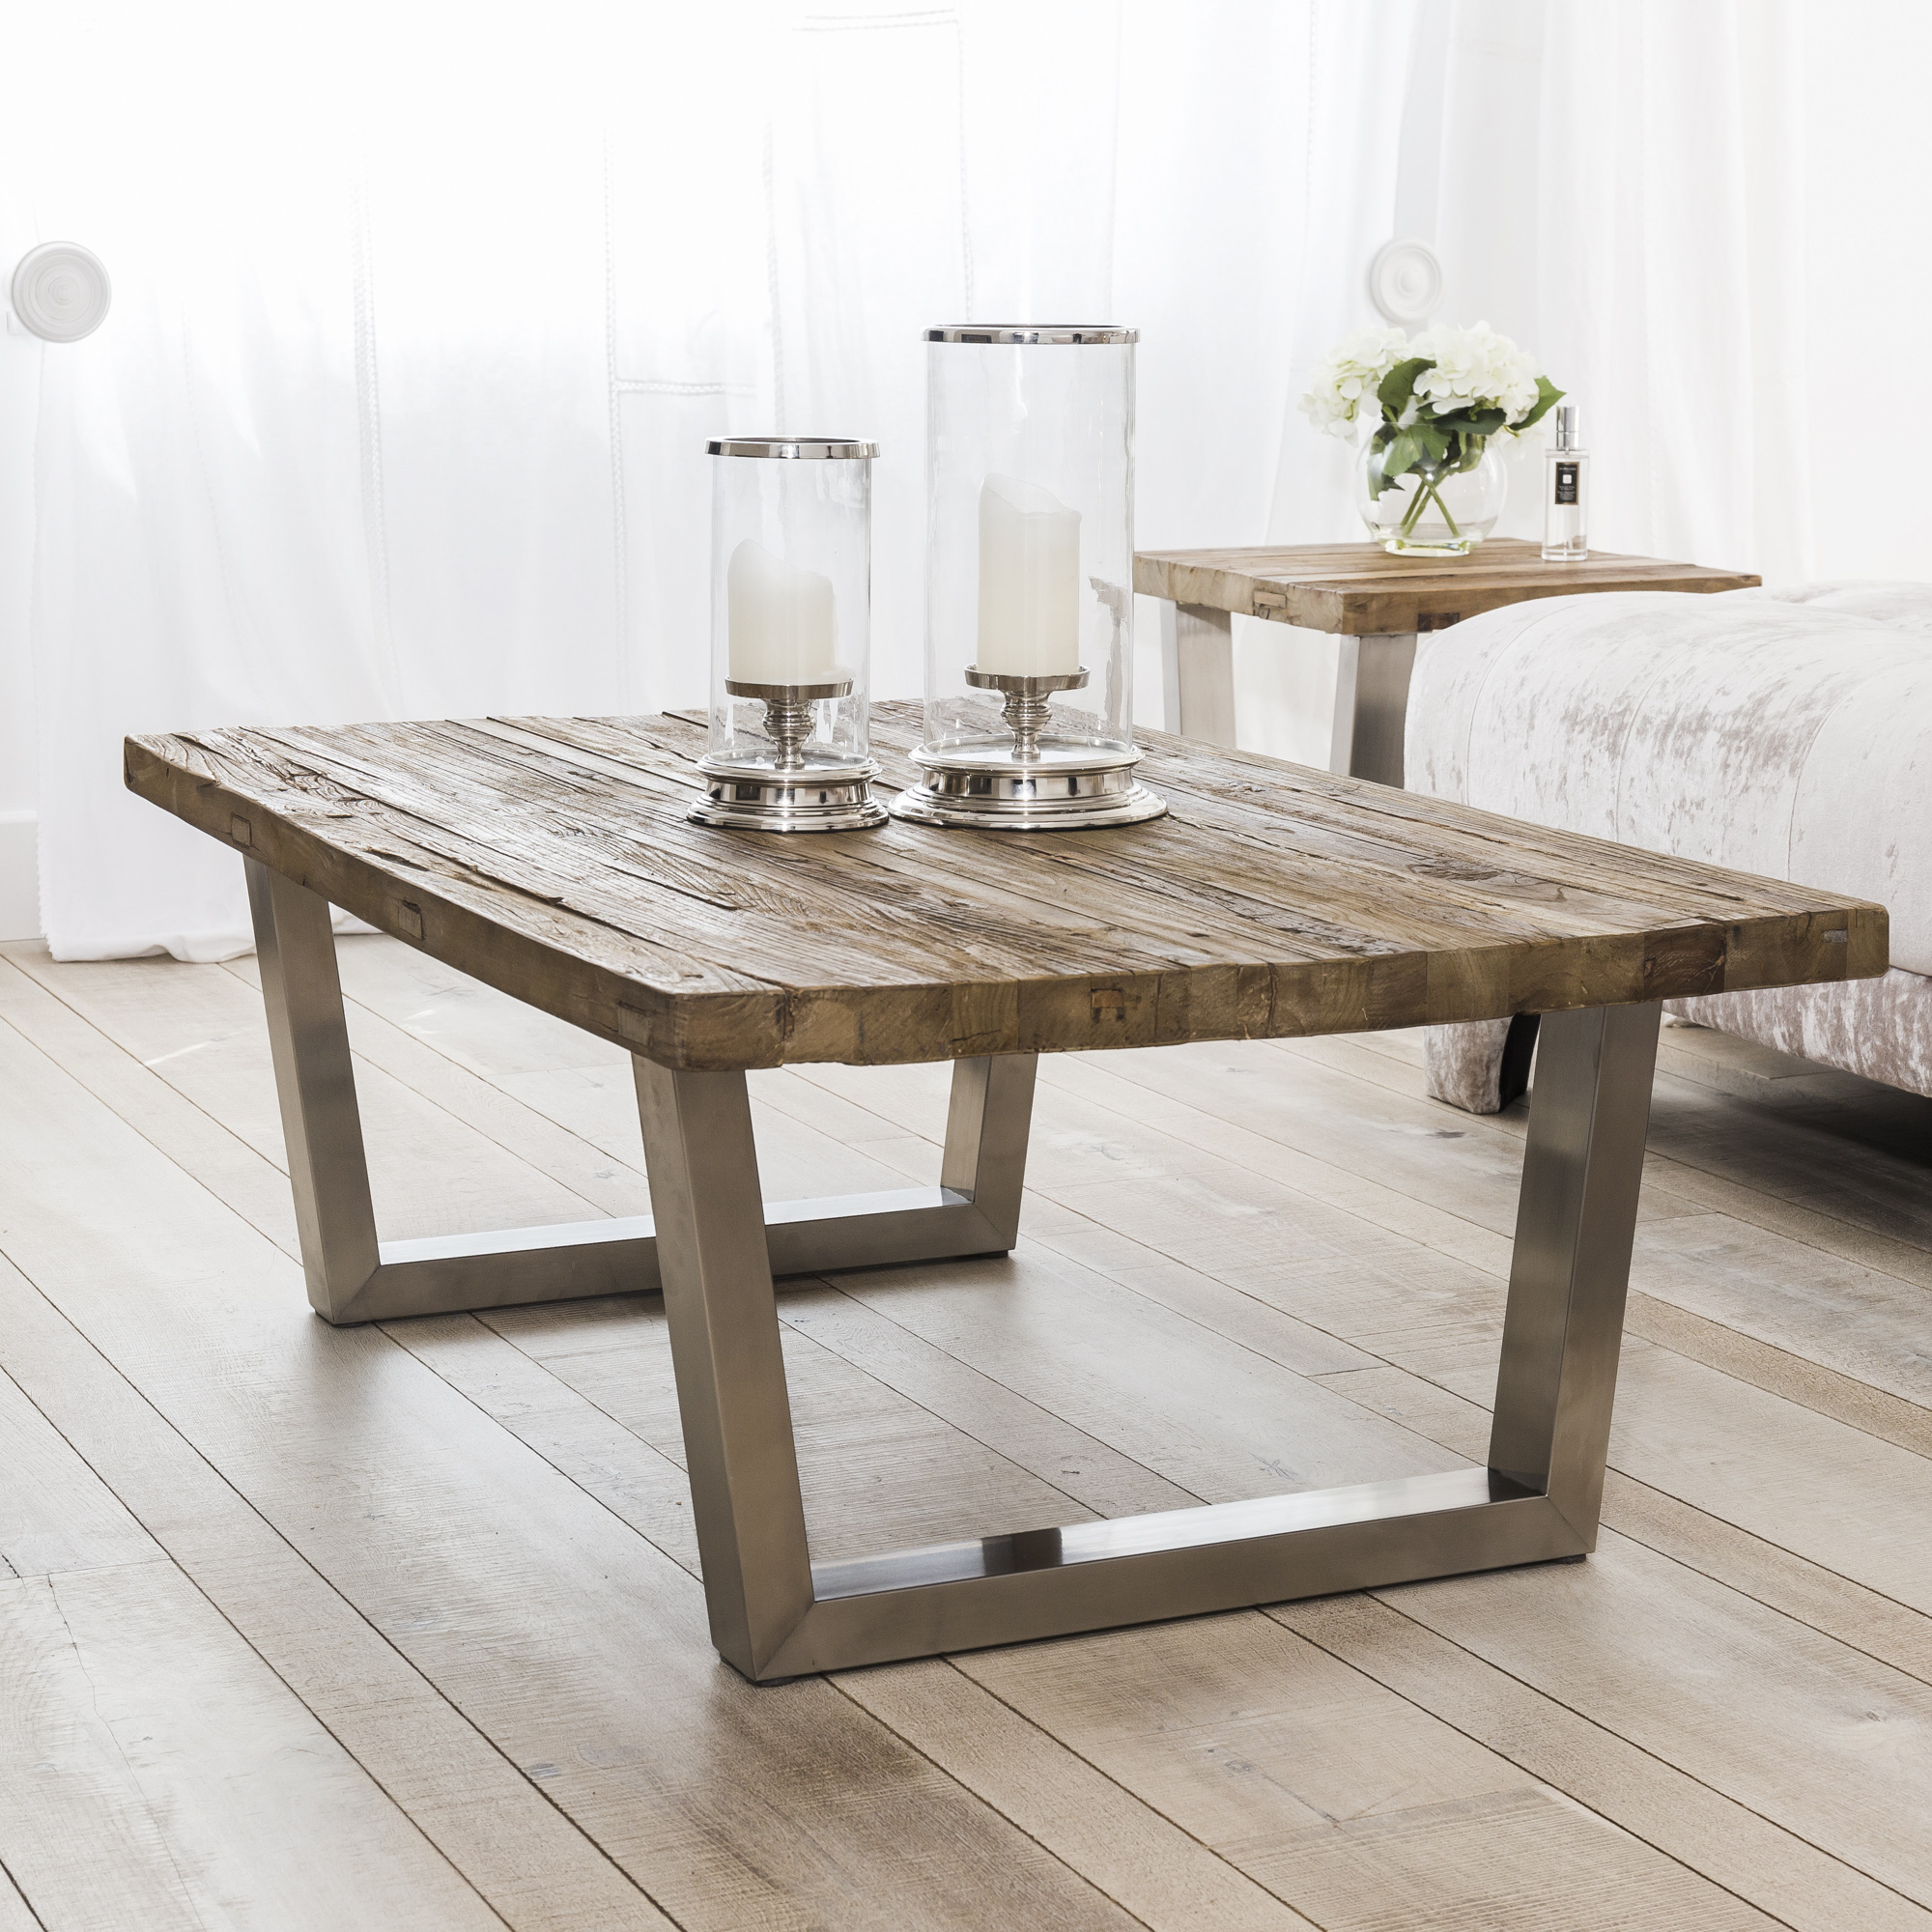 New Detroit Reclaimed Elm Wood Coffee Table With